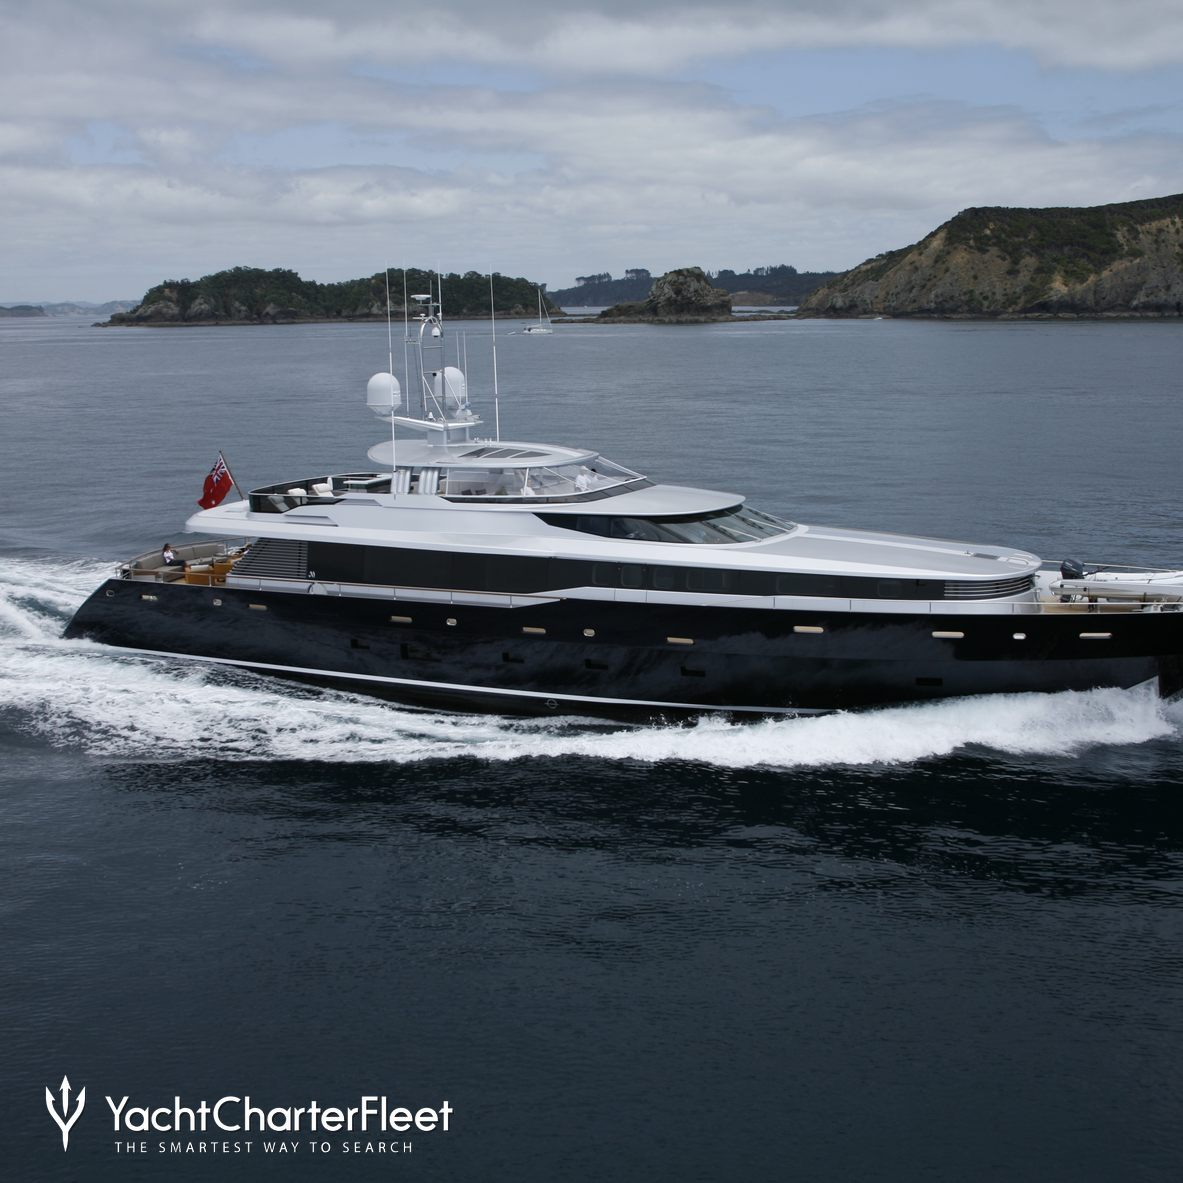 Polly Yacht Photos Ex Como 41m Luxury Motor Yacht For